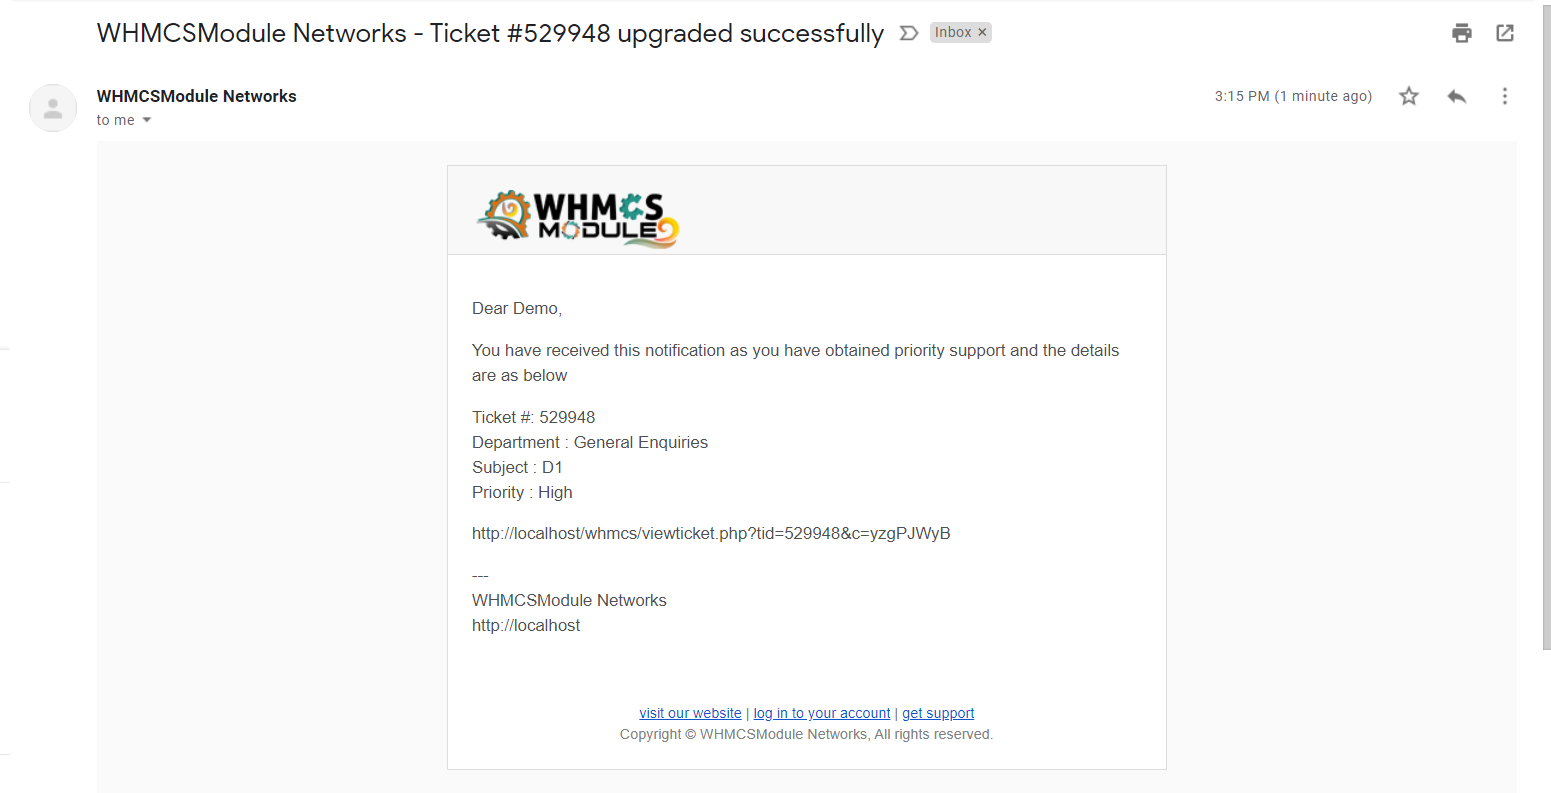 Premium support for WHMCS